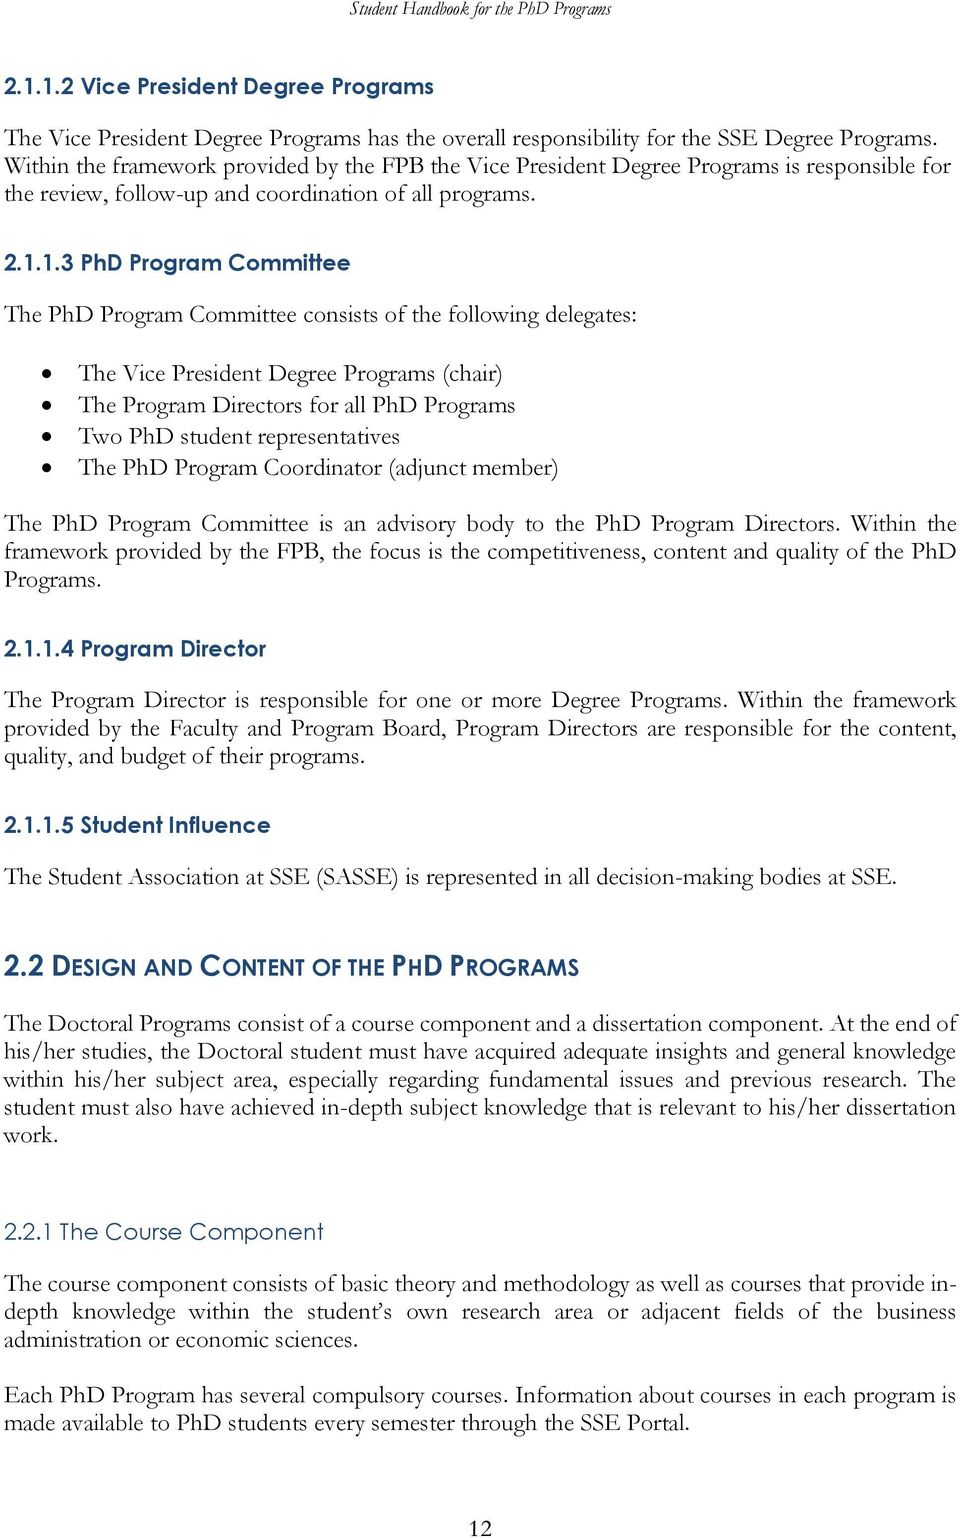 1.3 PhD Program Committee The PhD Program Committee consists of the following delegates: The Vice President Degree Programs (chair) The Program Directors for all PhD Programs Two PhD student